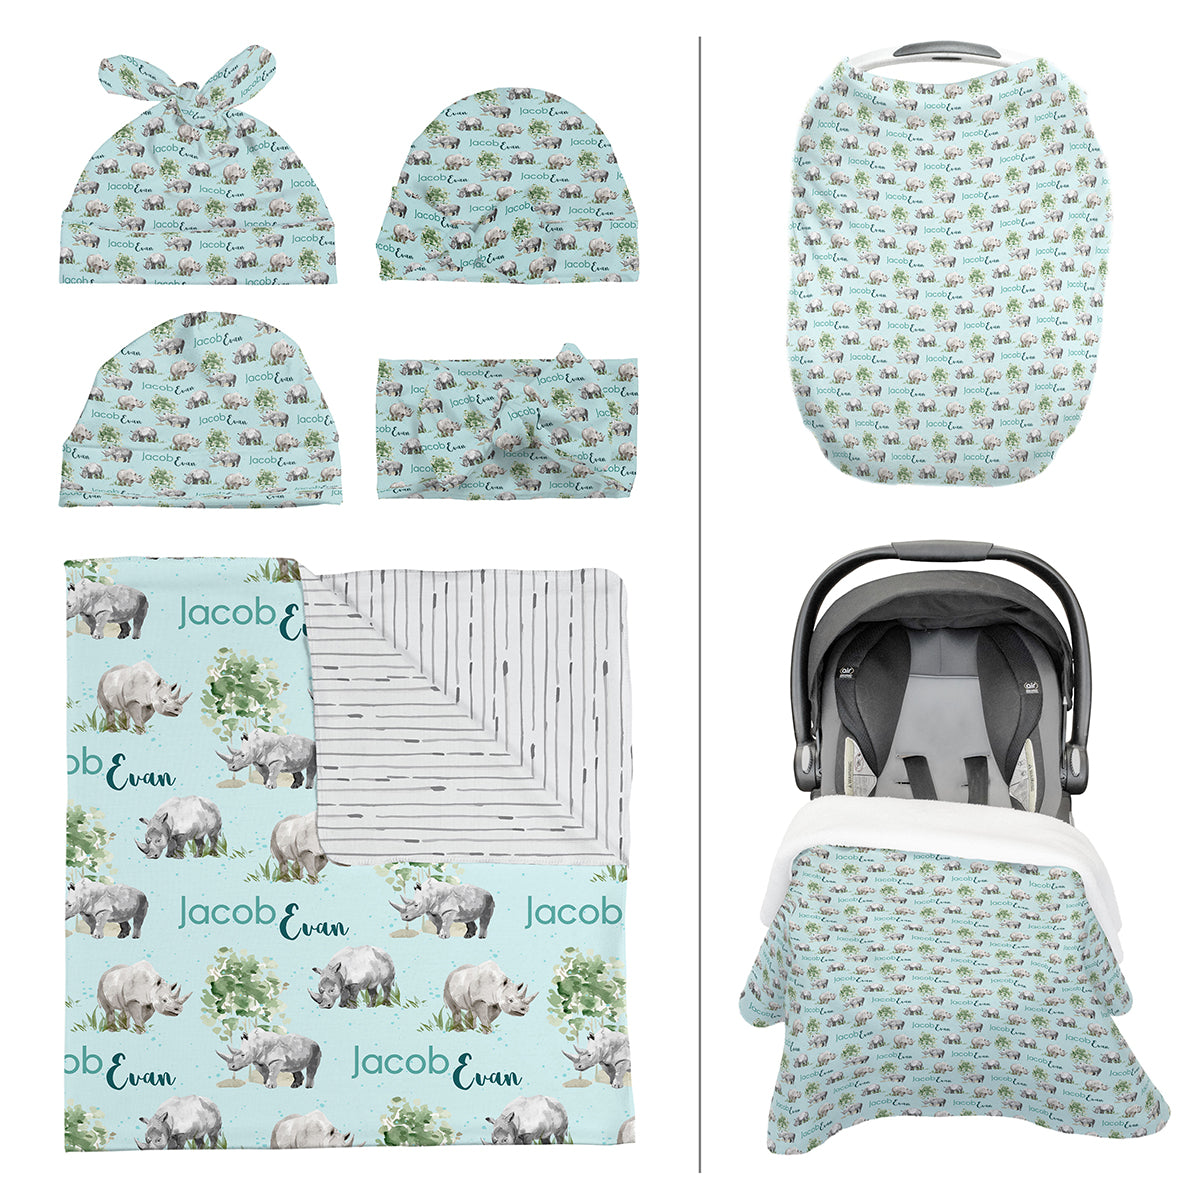 Jacob's Mighty Rhino | Take Me Home Bundle